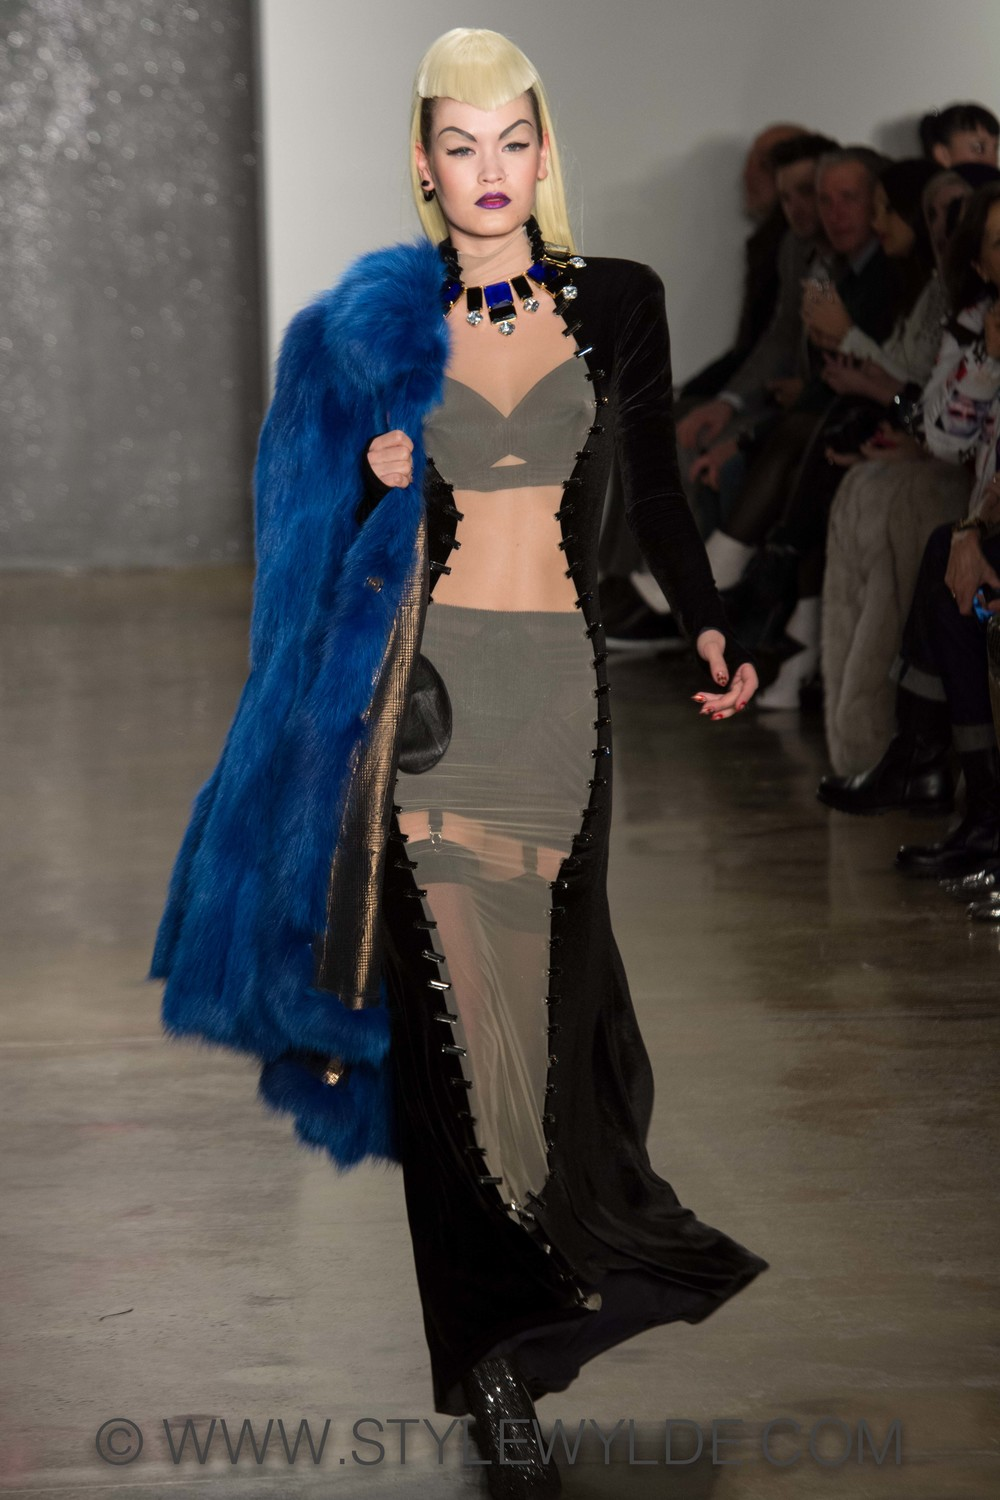 Stylewylde_Blonds_FW2014_FOH_SJW 1 of 1-9.jpg